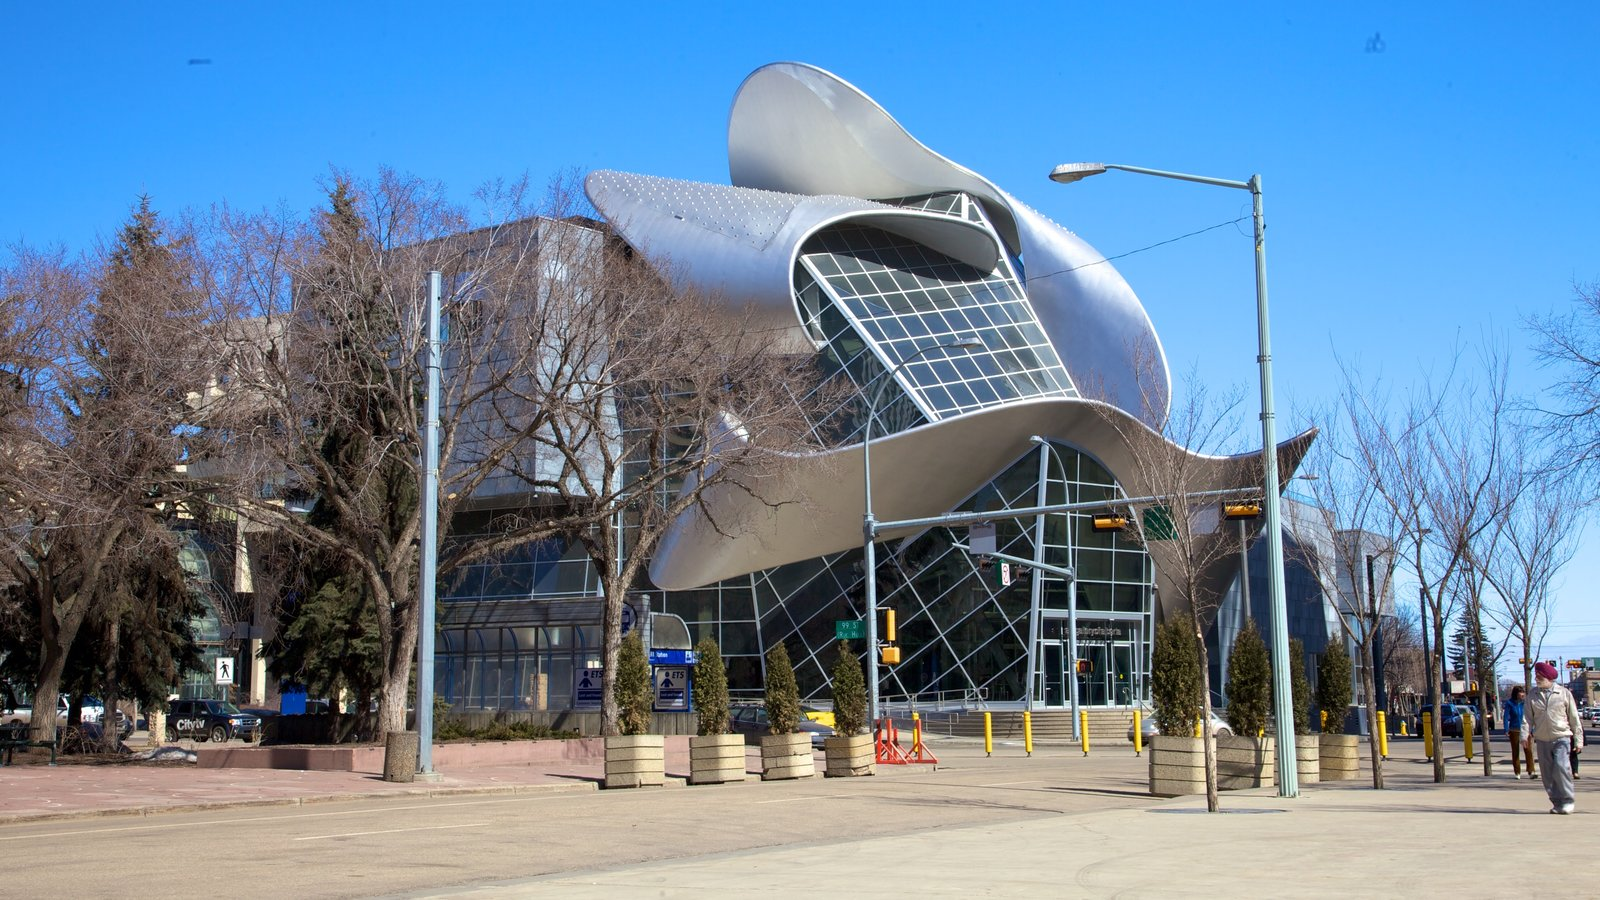 Art Gallery of Alberta showing art and modern architecture